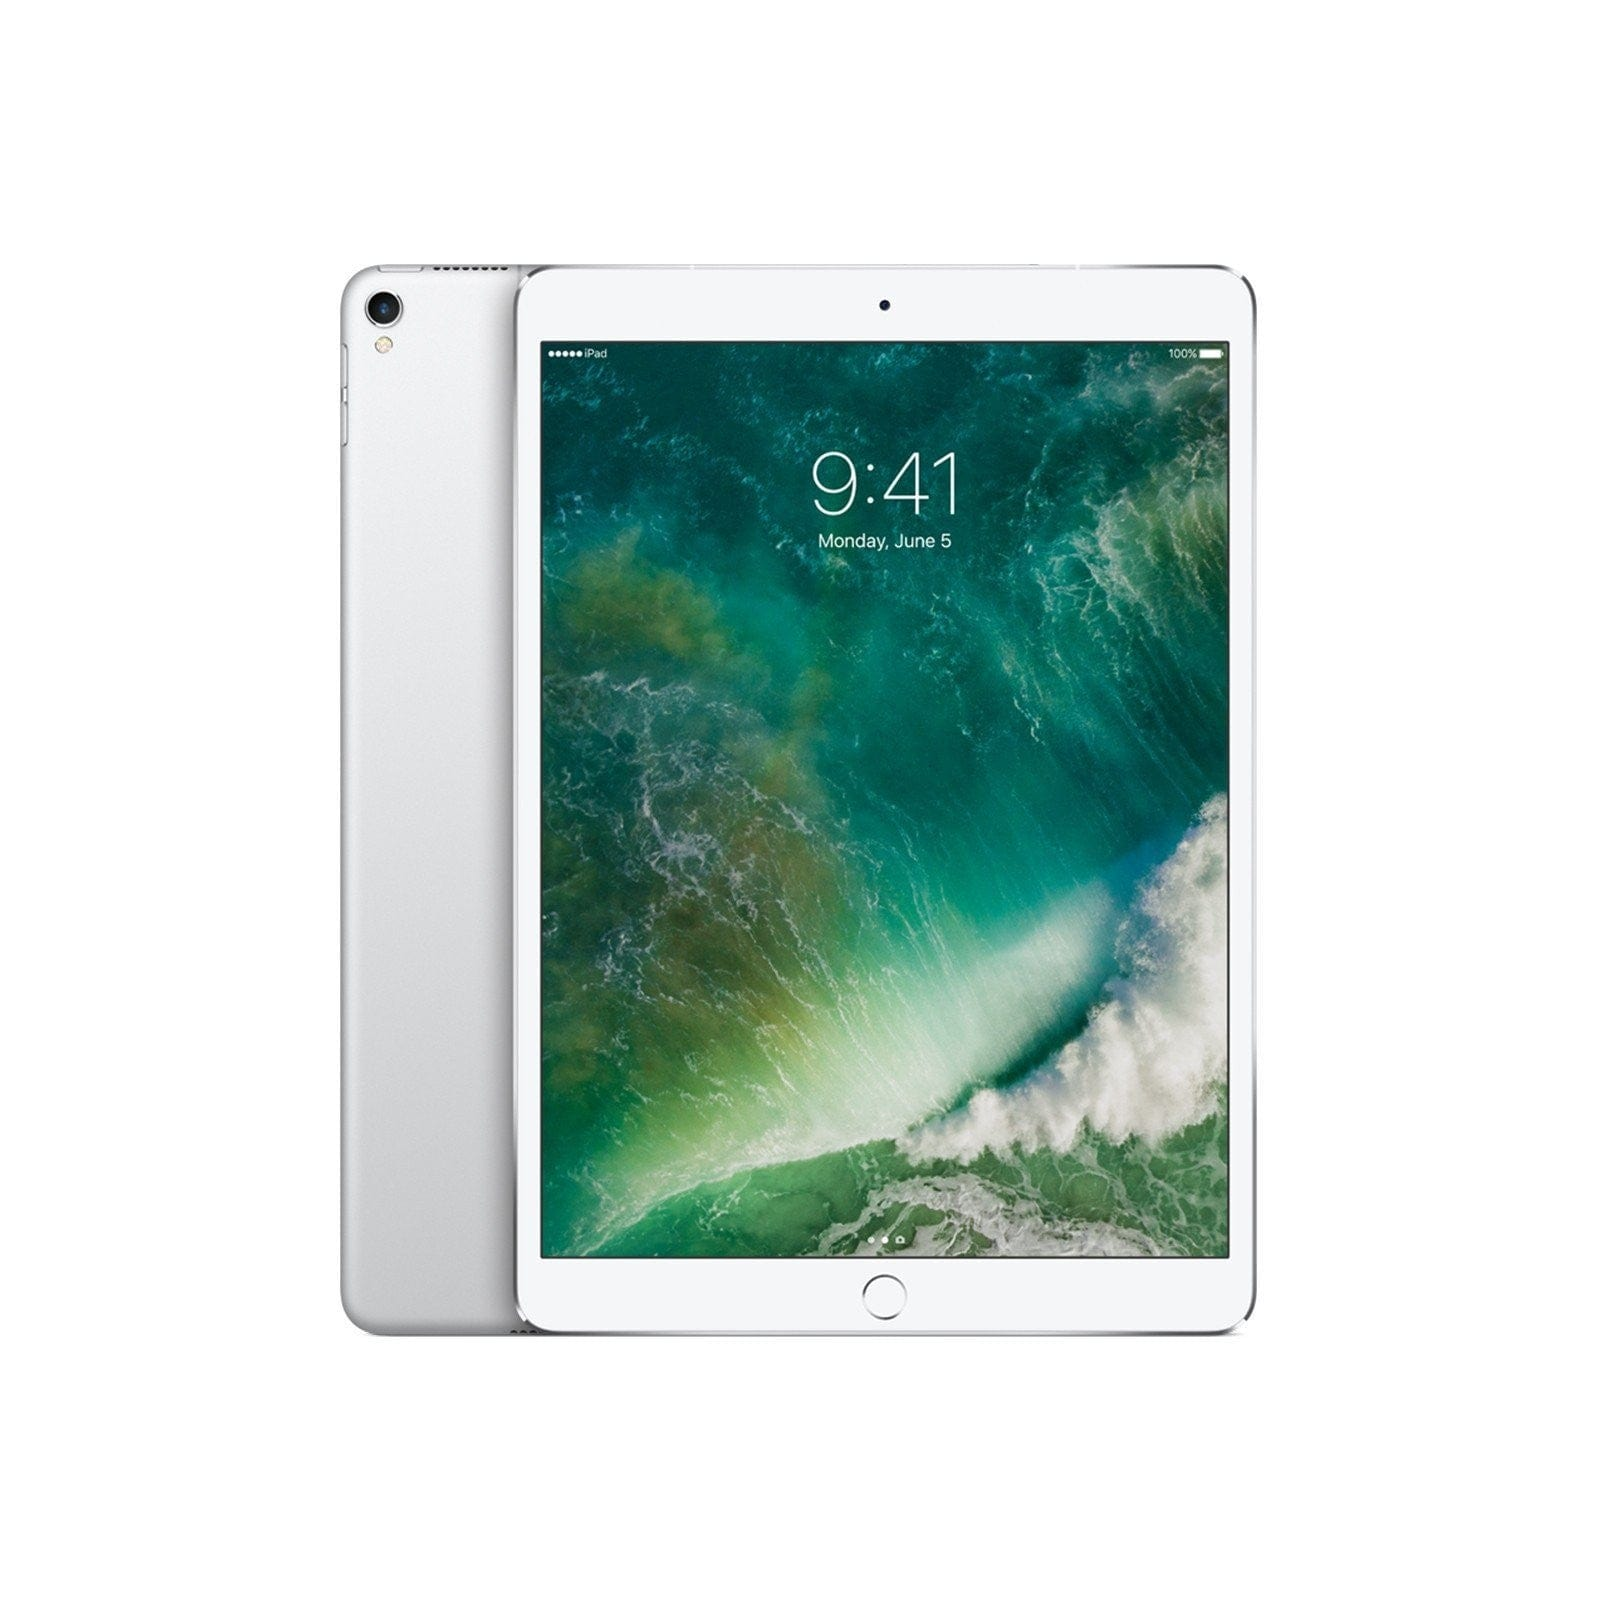 istore tablet New iPad Pro 12.9inch Wifi & Cellular 512GB- Silver